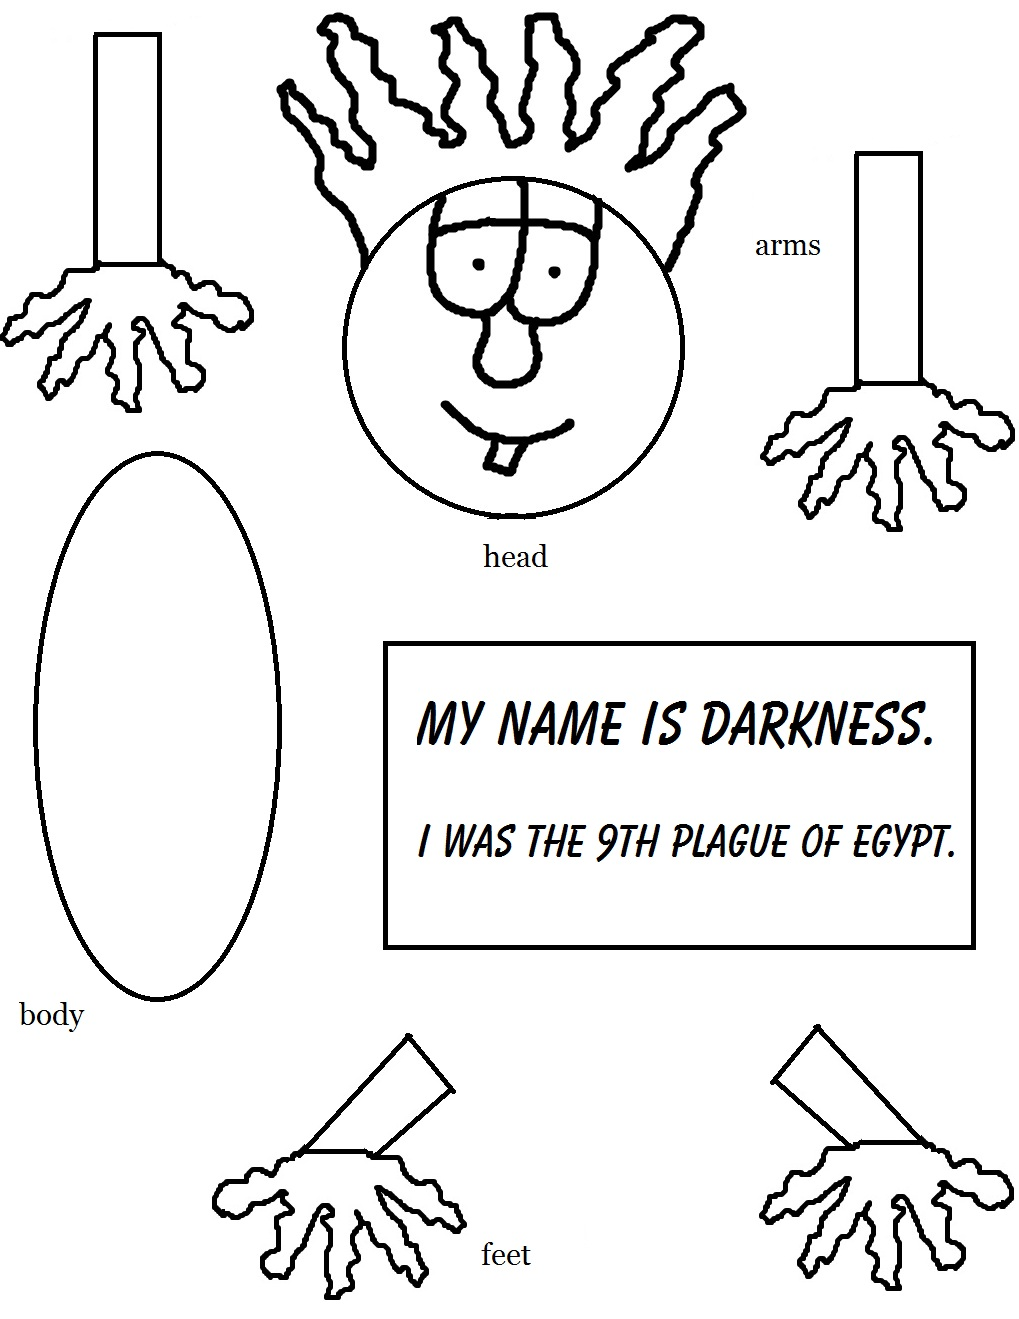 the 10 plagues of egypt darkness lesson